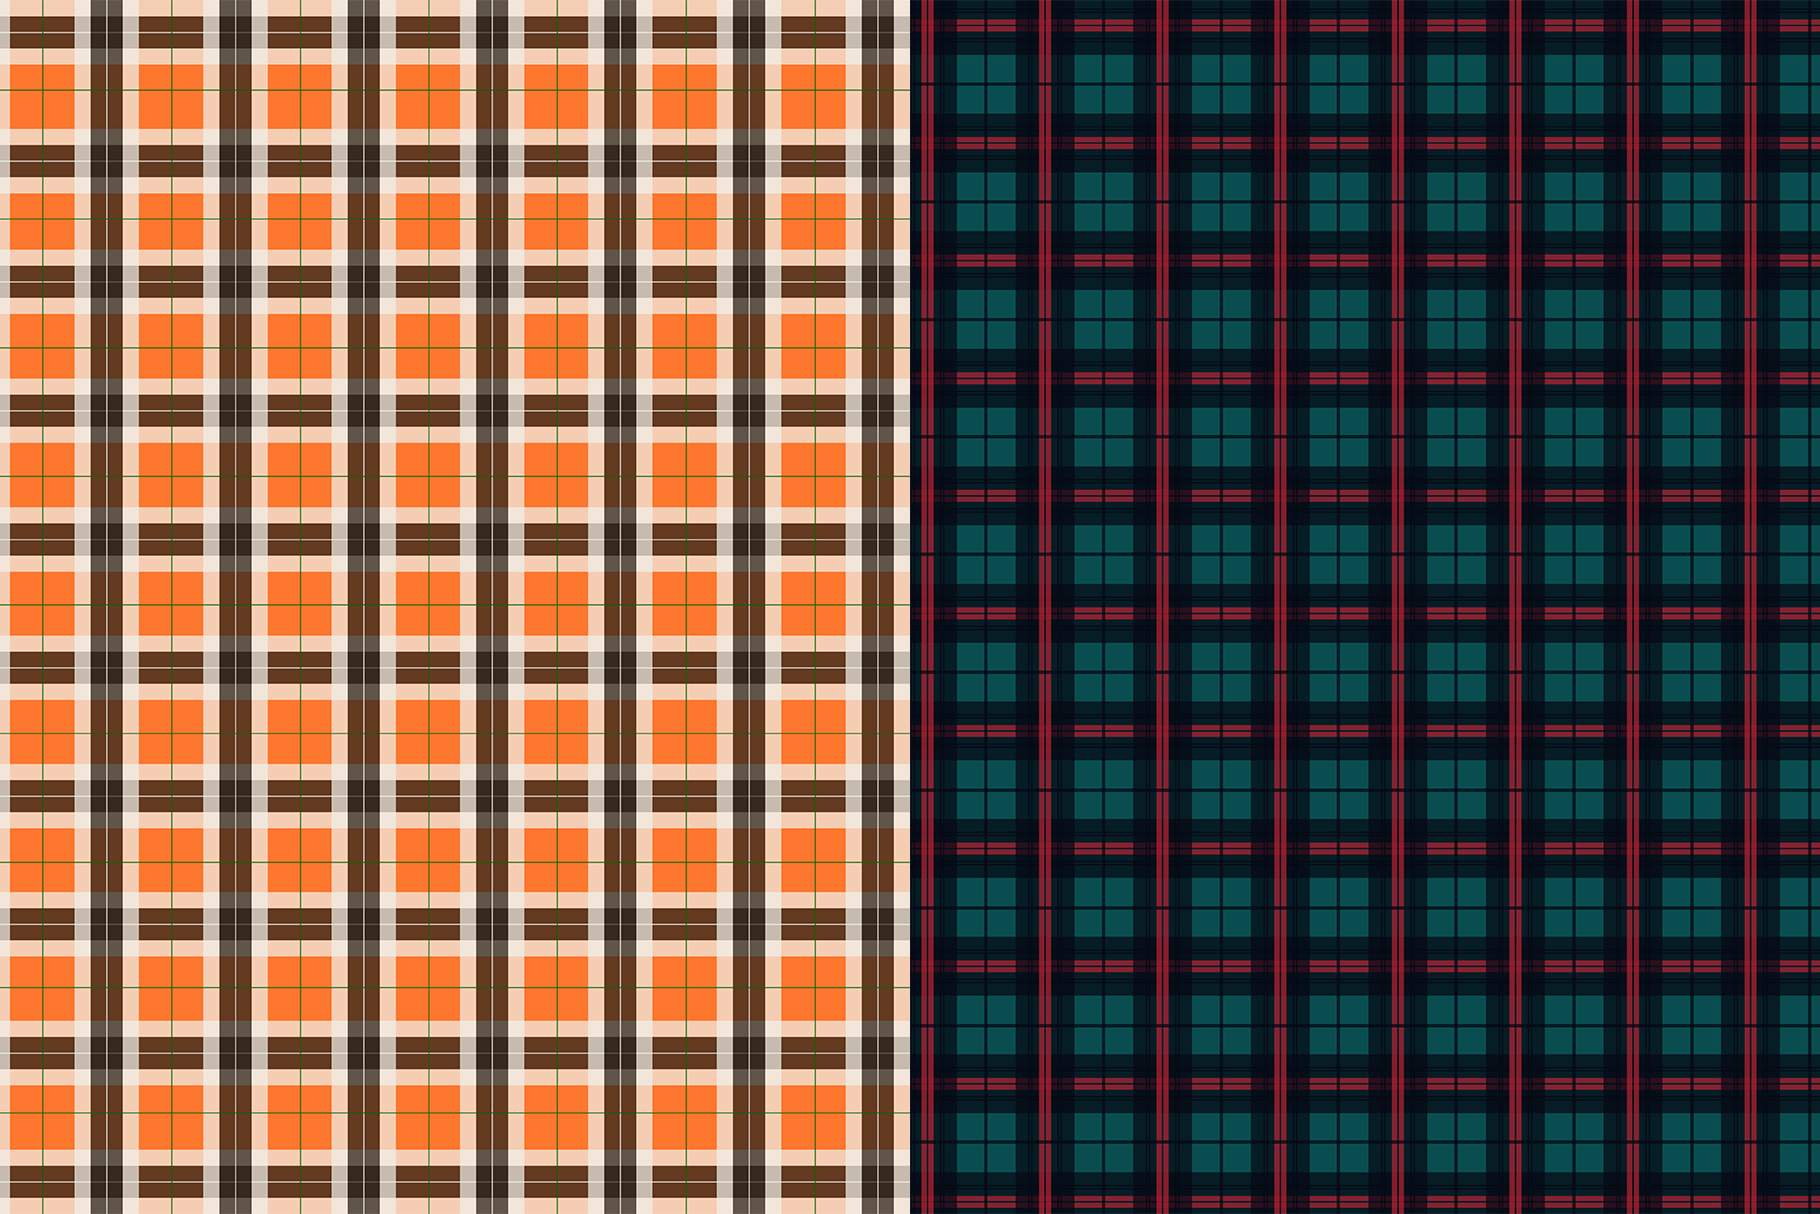 10 Checkered Patterns example image 8